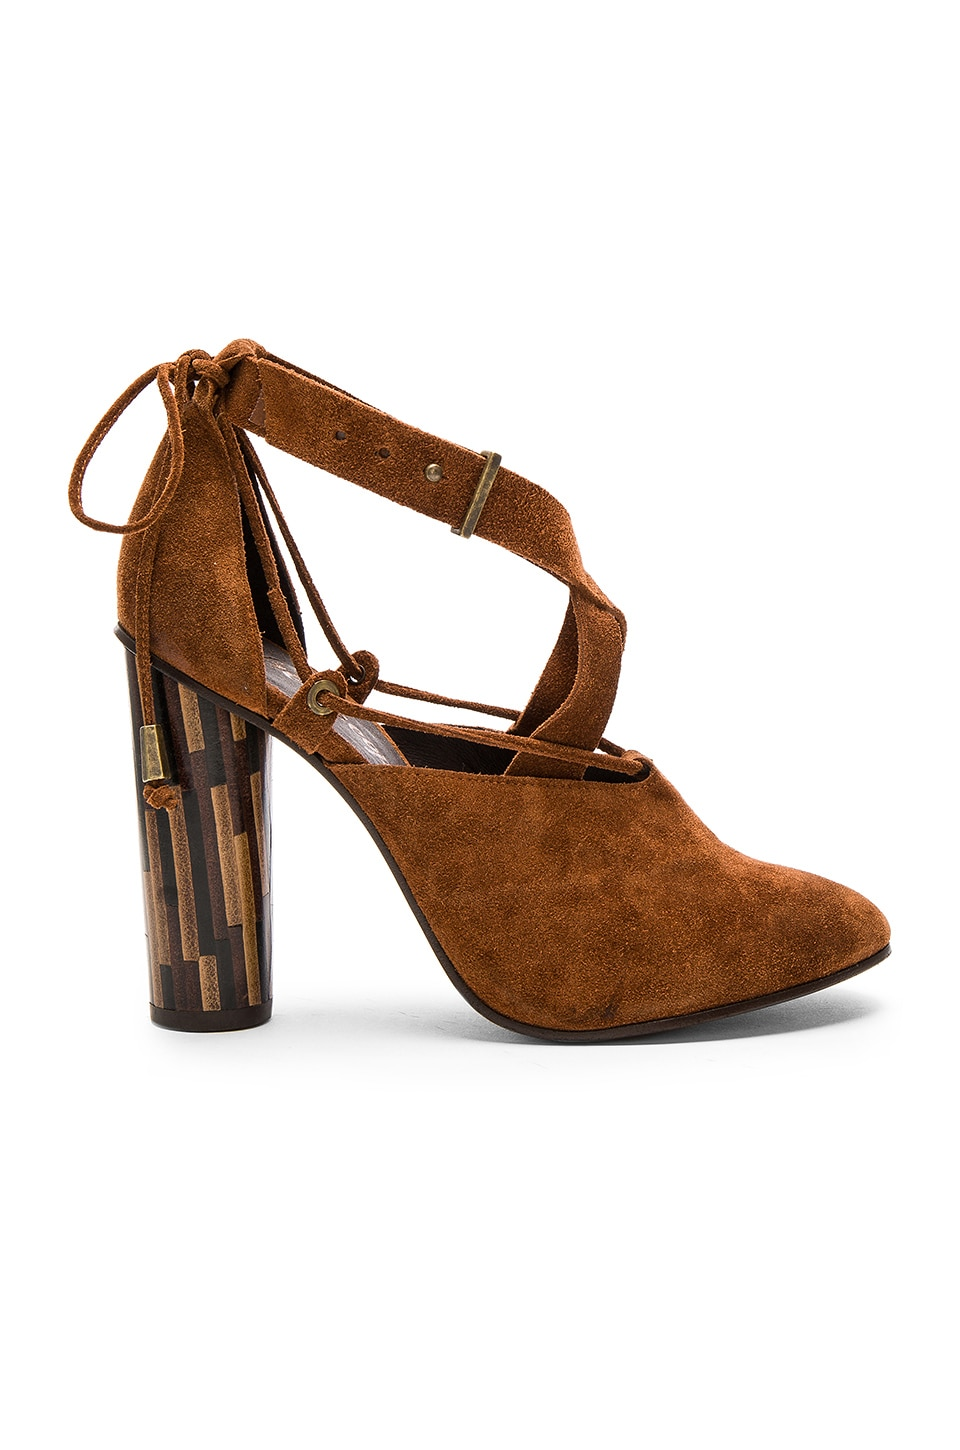 Free People Nouvella Wrap Heels in Brown